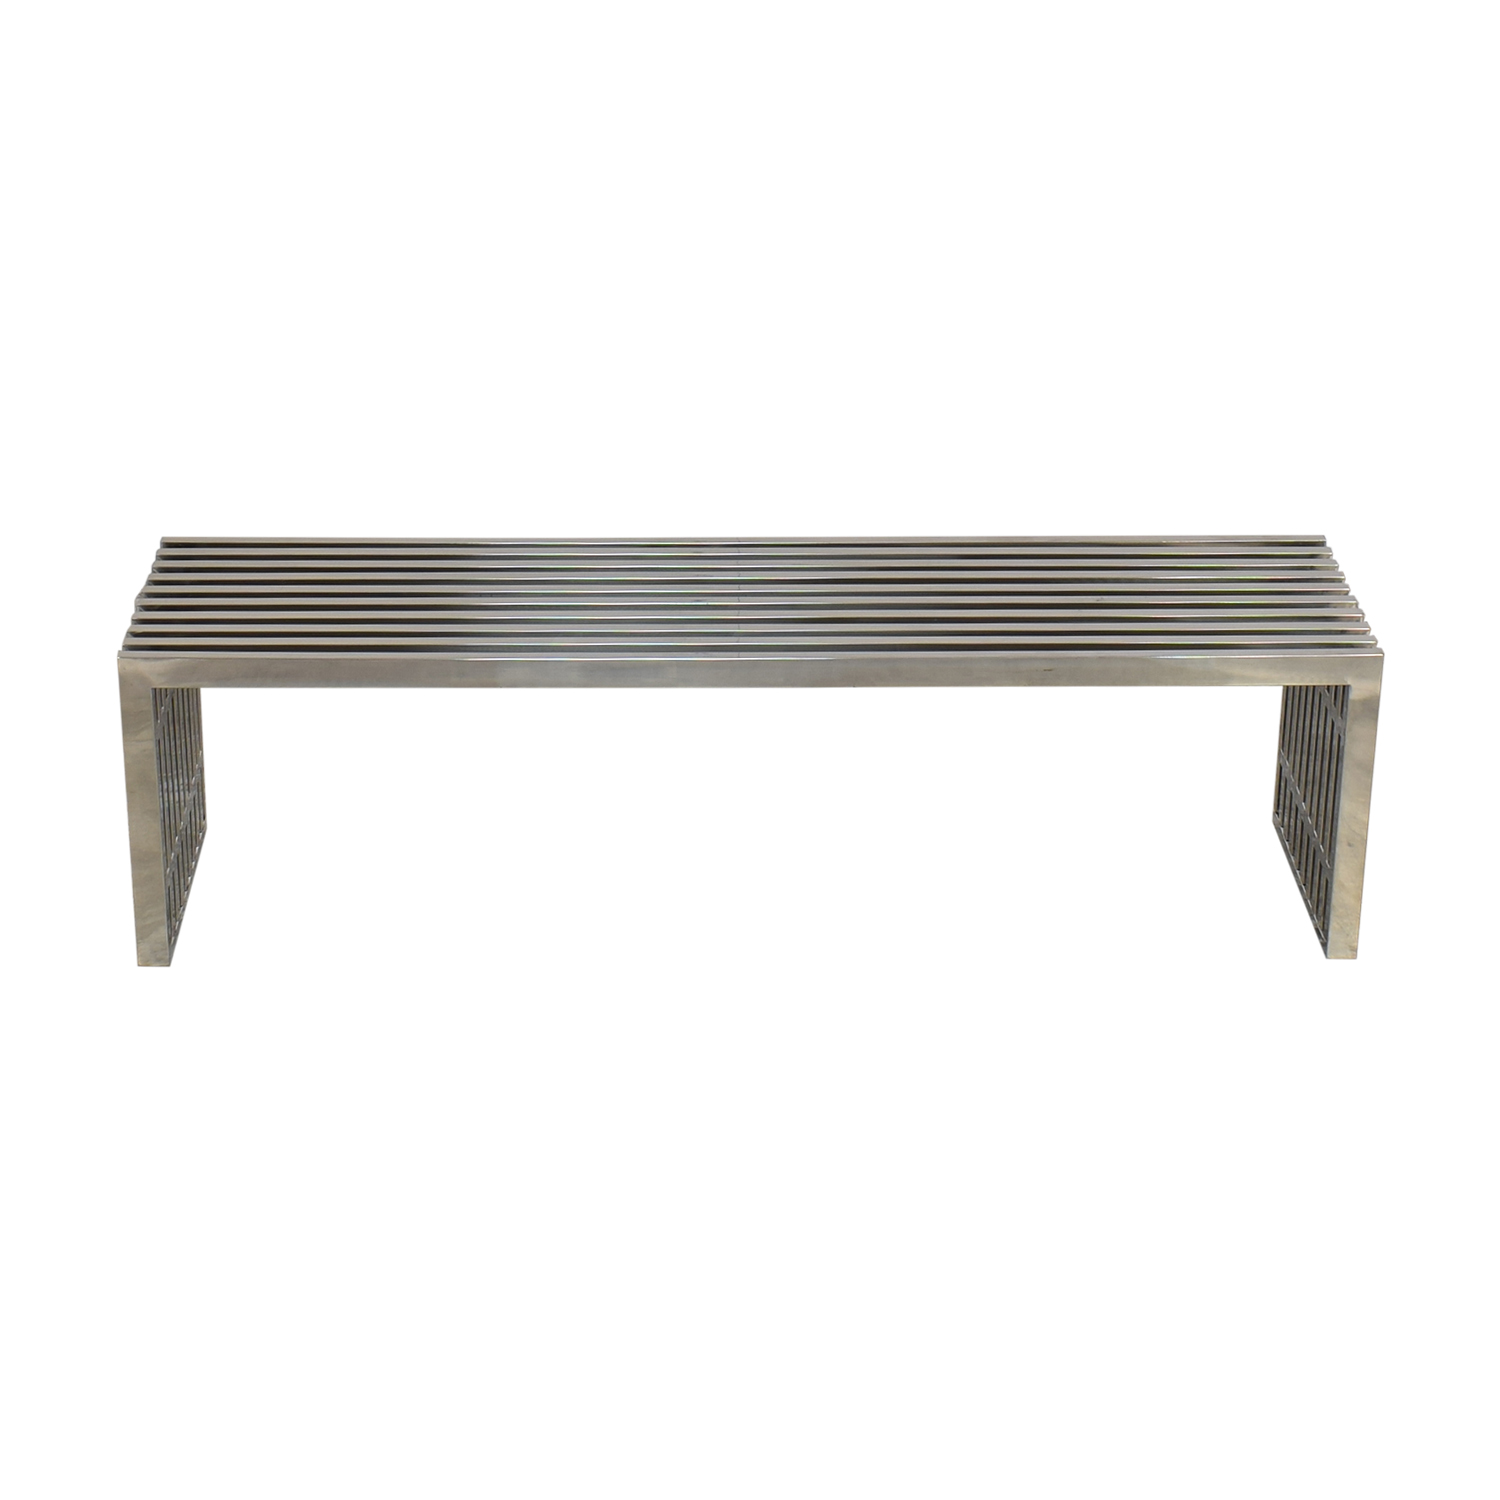 buy LexMod Gridiron Large Bench LexMod Benches